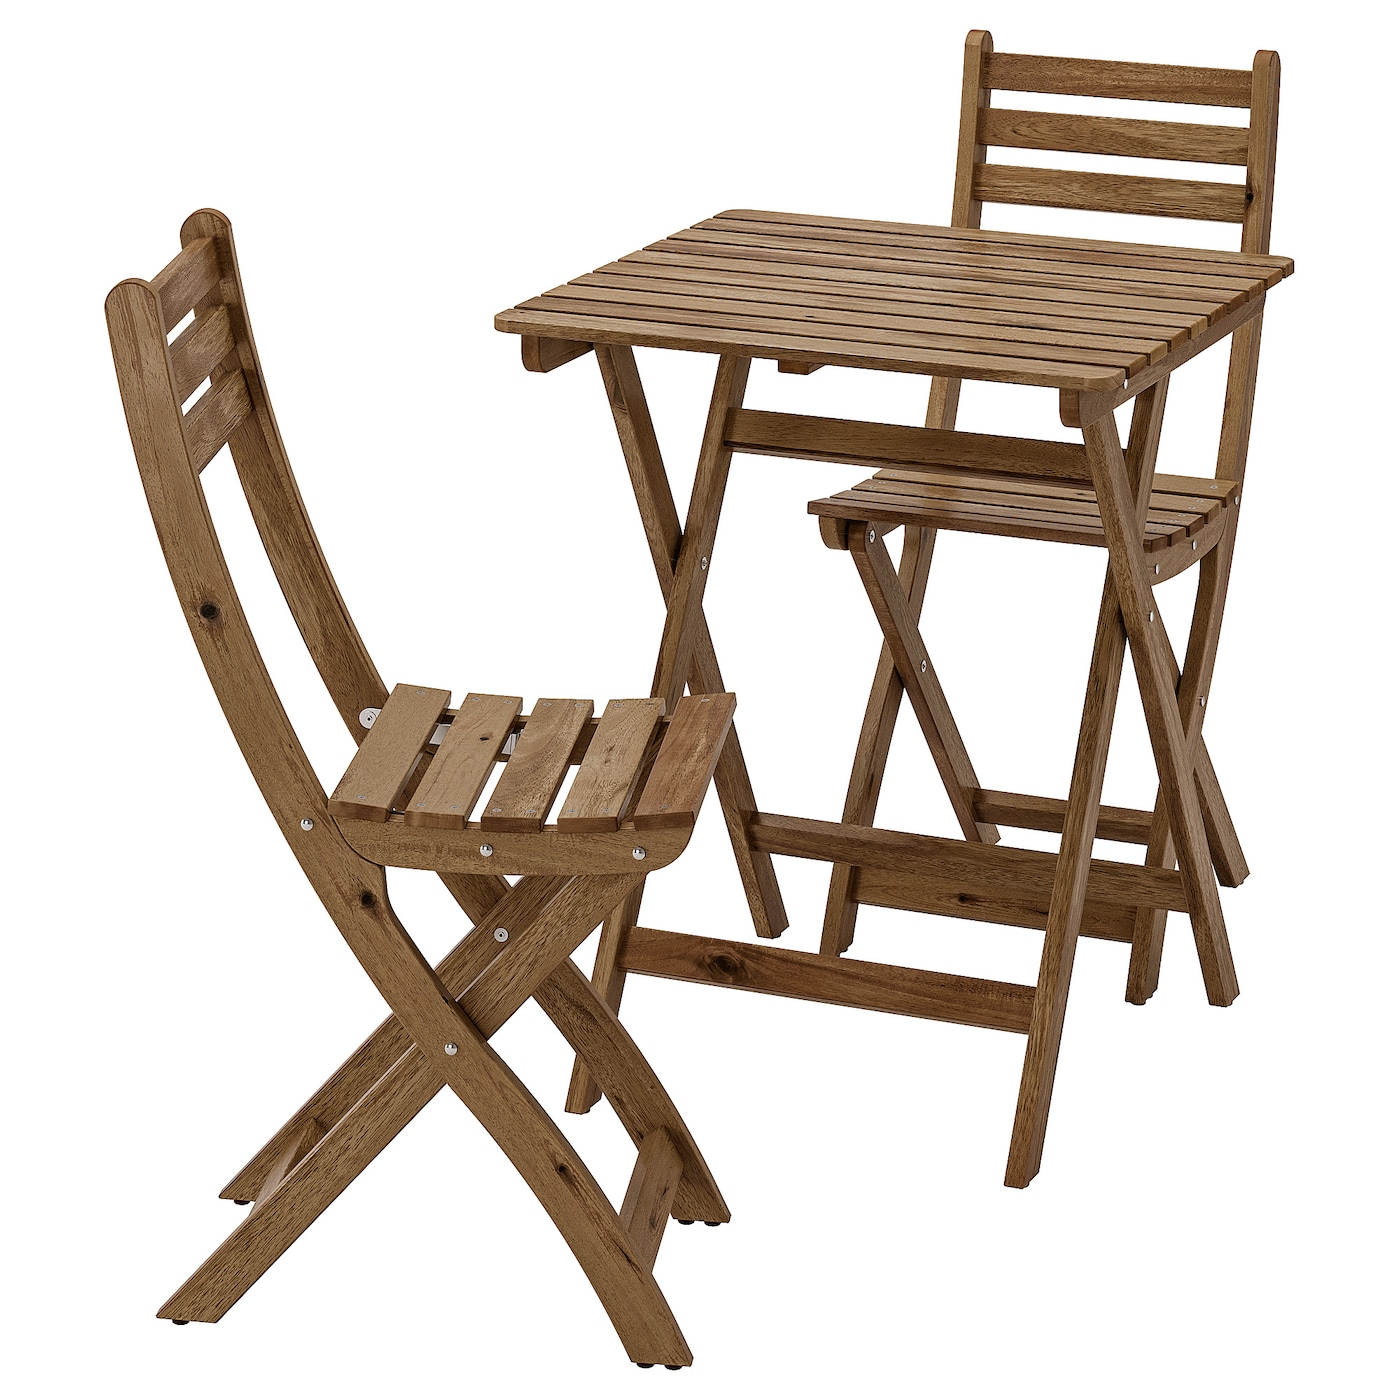 Askholmen Table 2 Chairs Outdoor